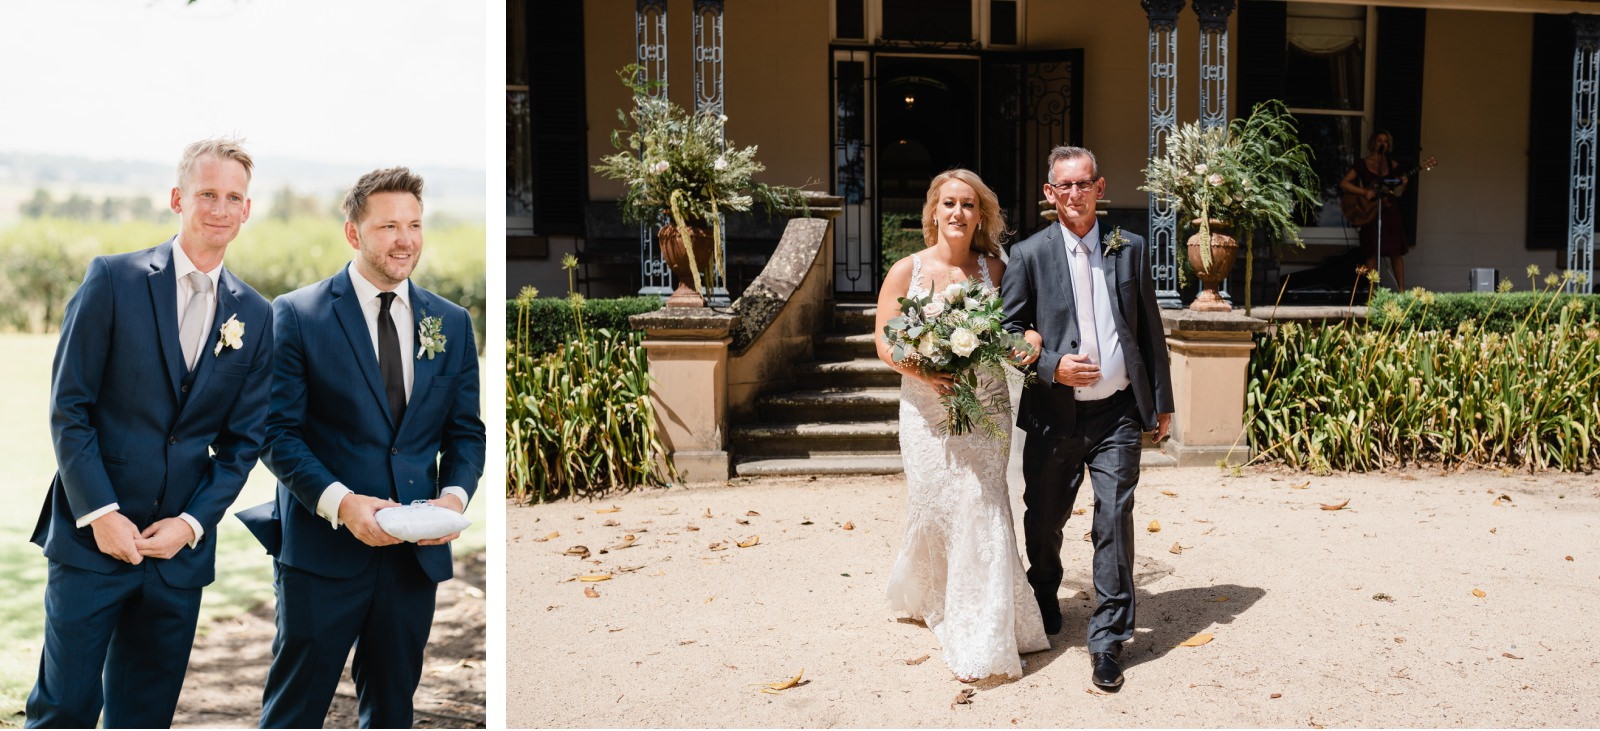 wallalong-house-hunter-valley-wedding-photographer-28